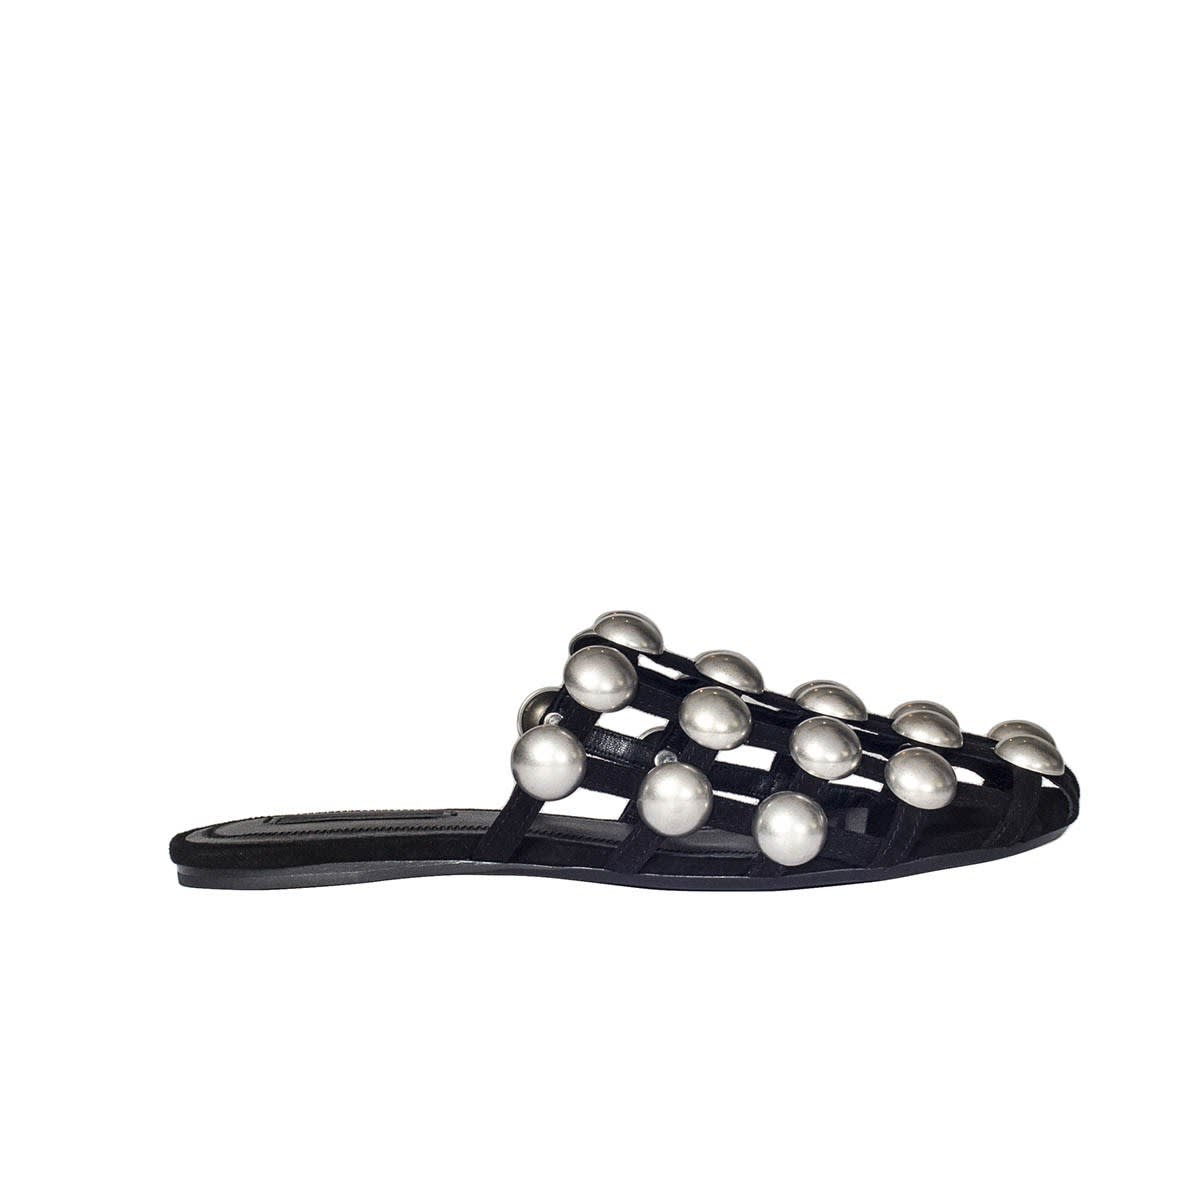 Buy Alexander Wang Amelia Sandals online, shop Alexander Wang shoes with free shipping